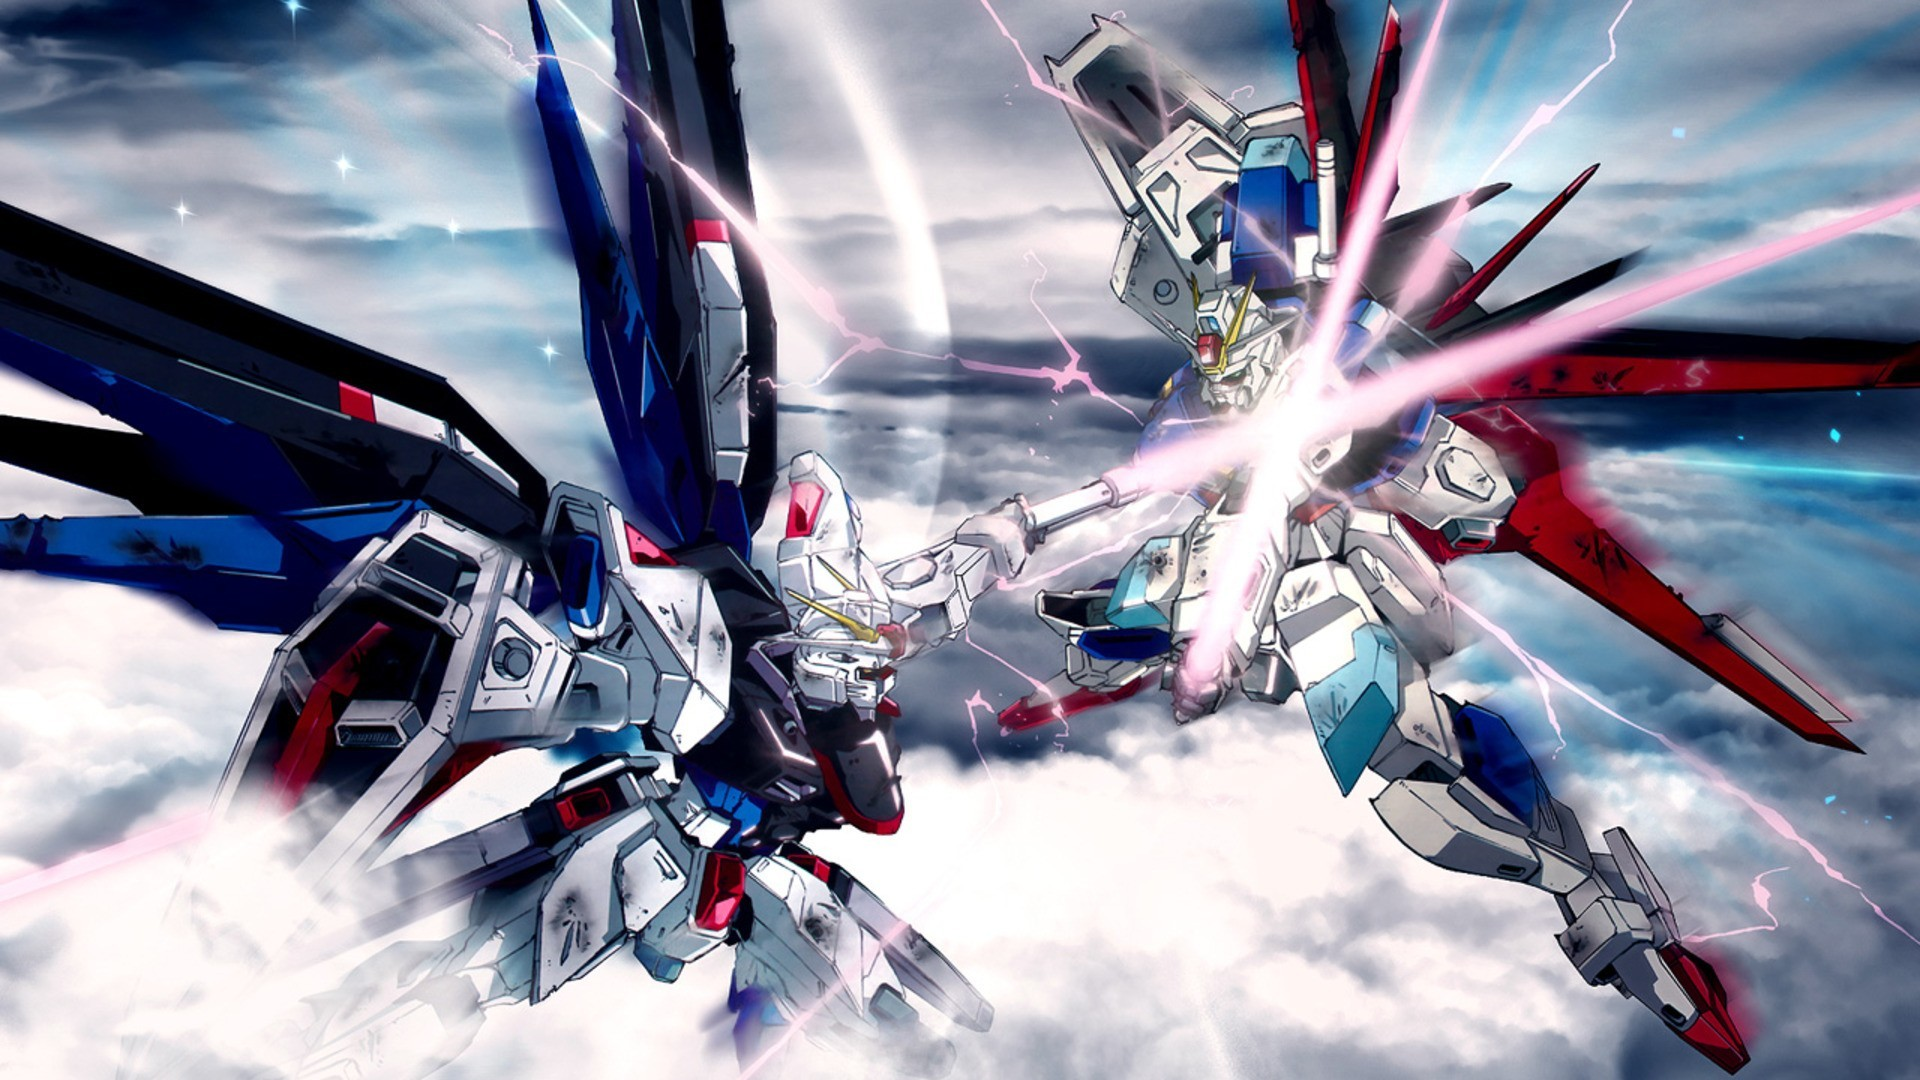 Gundam Wing Wallpapers - Wickedsa com